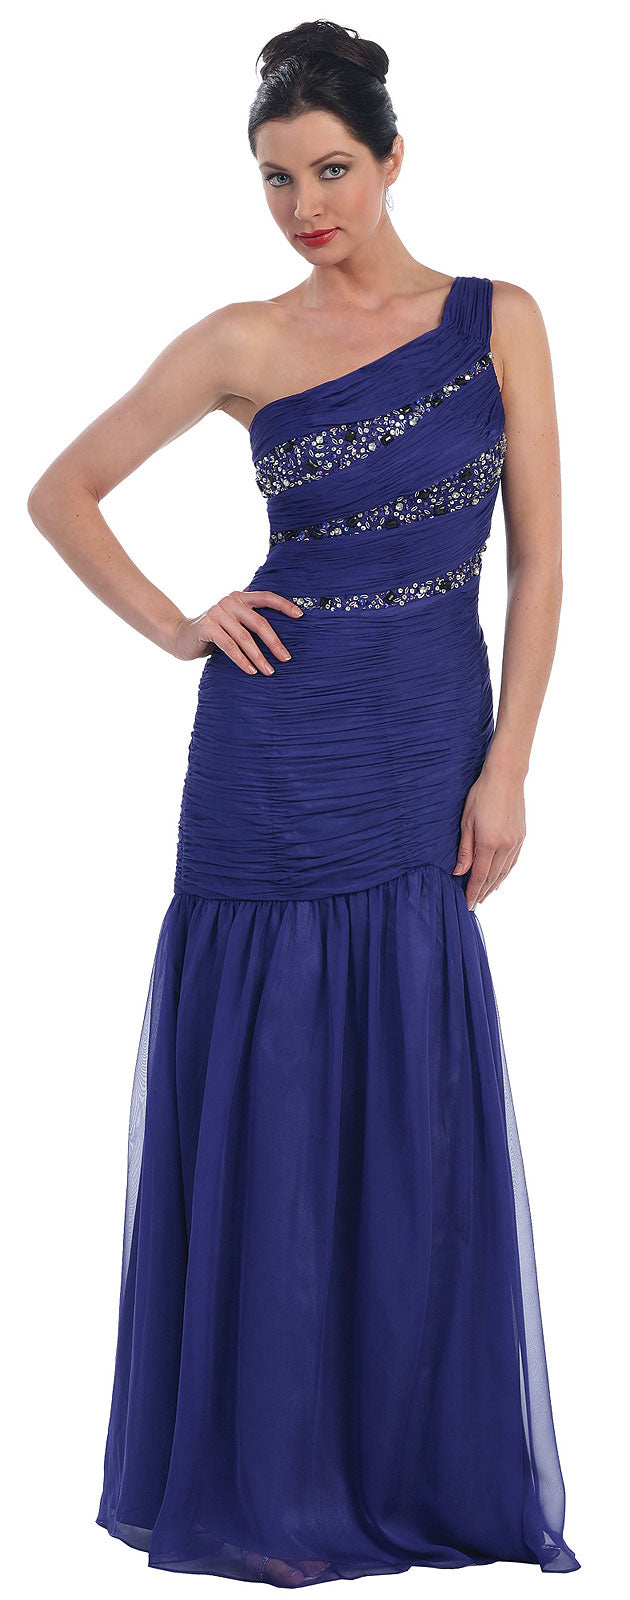 Main image of One Shoulder Ruched Bodice Mermaid Formal Dress